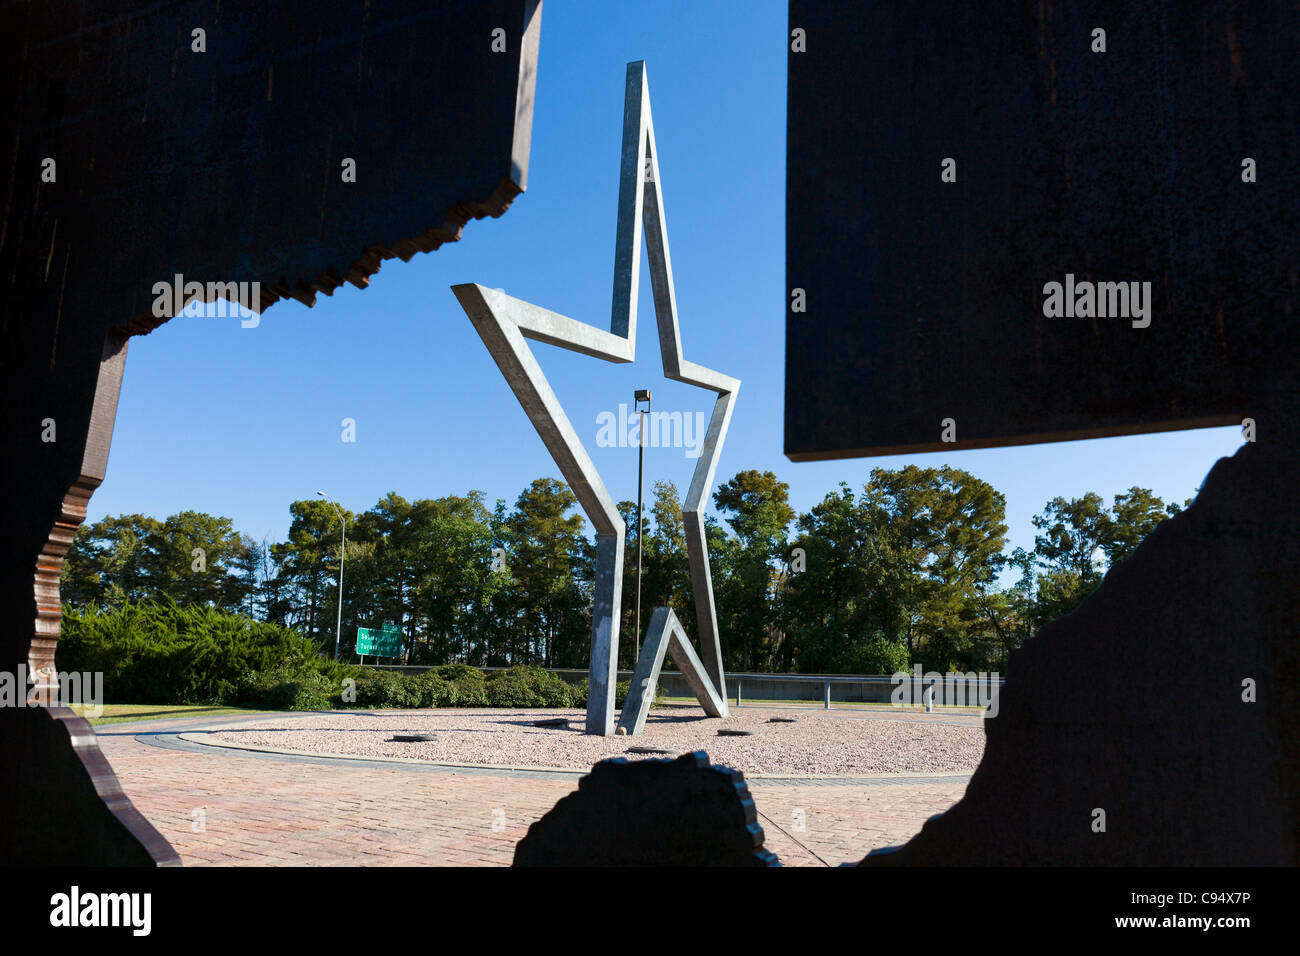 Lone Star sculpture at a rest area on the Louisiana/Texas state line, USA - Stock Image